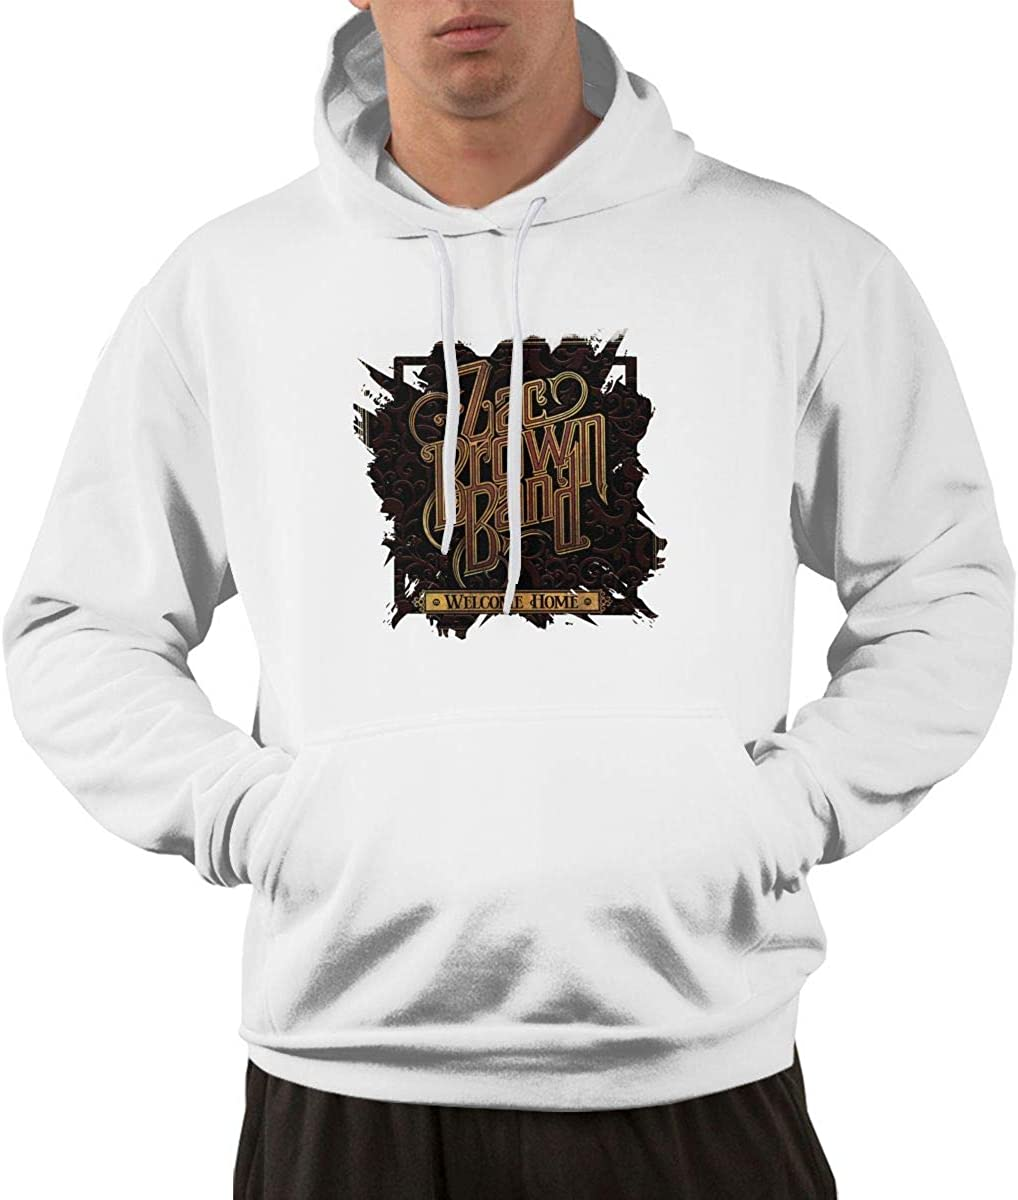 YOLO Zac Brown Band Welcome Home Mens Hoodie White